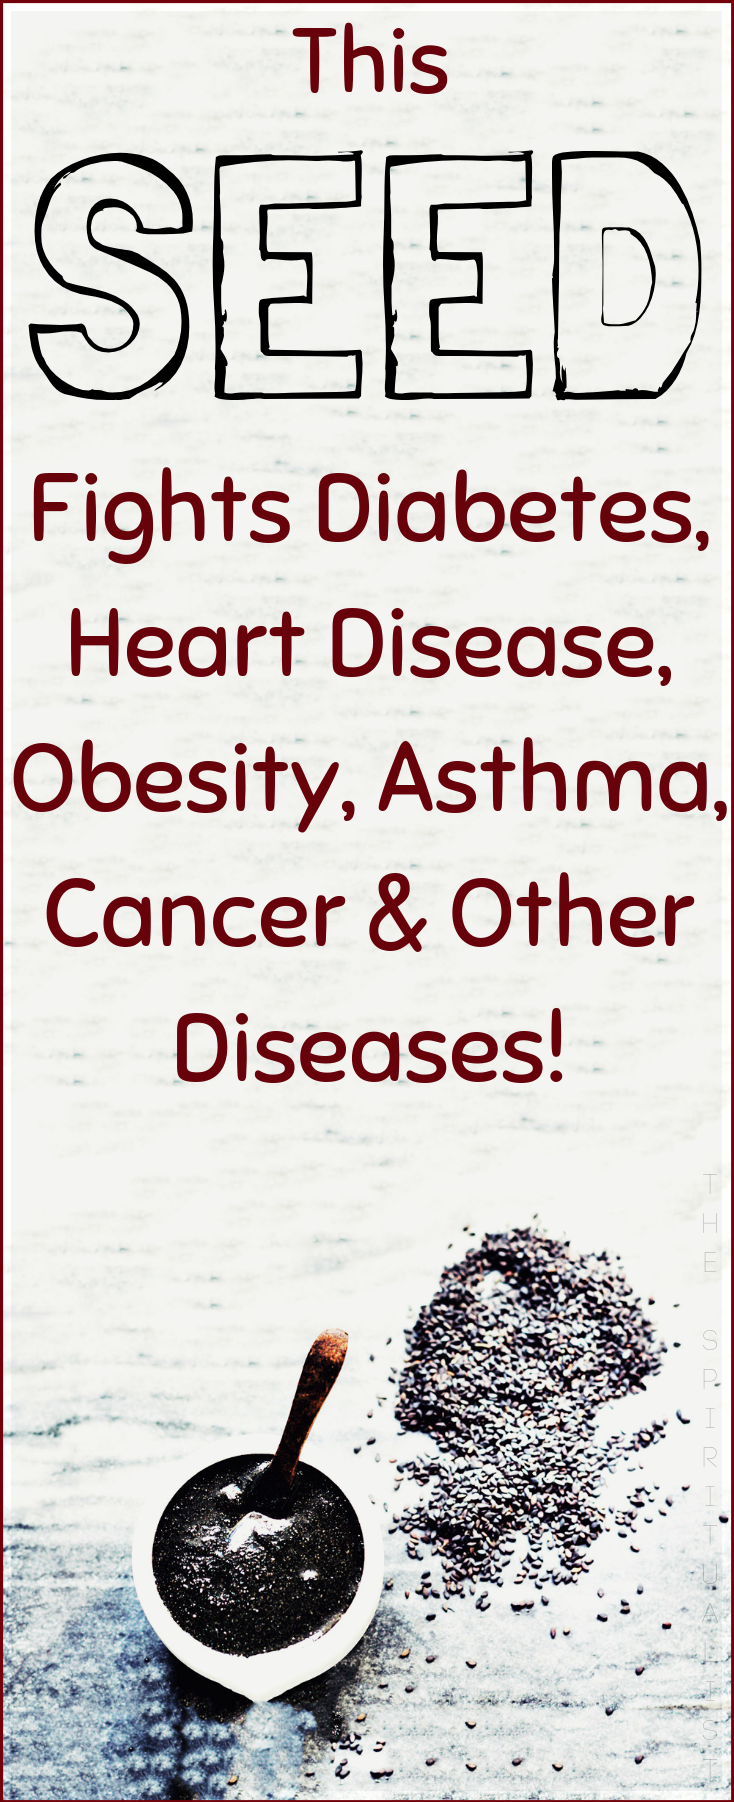 What Do Asthma Heart Disease And Cancer >> This Powerful Seed Fights Diabetes Heart Disease Obesity Asthma